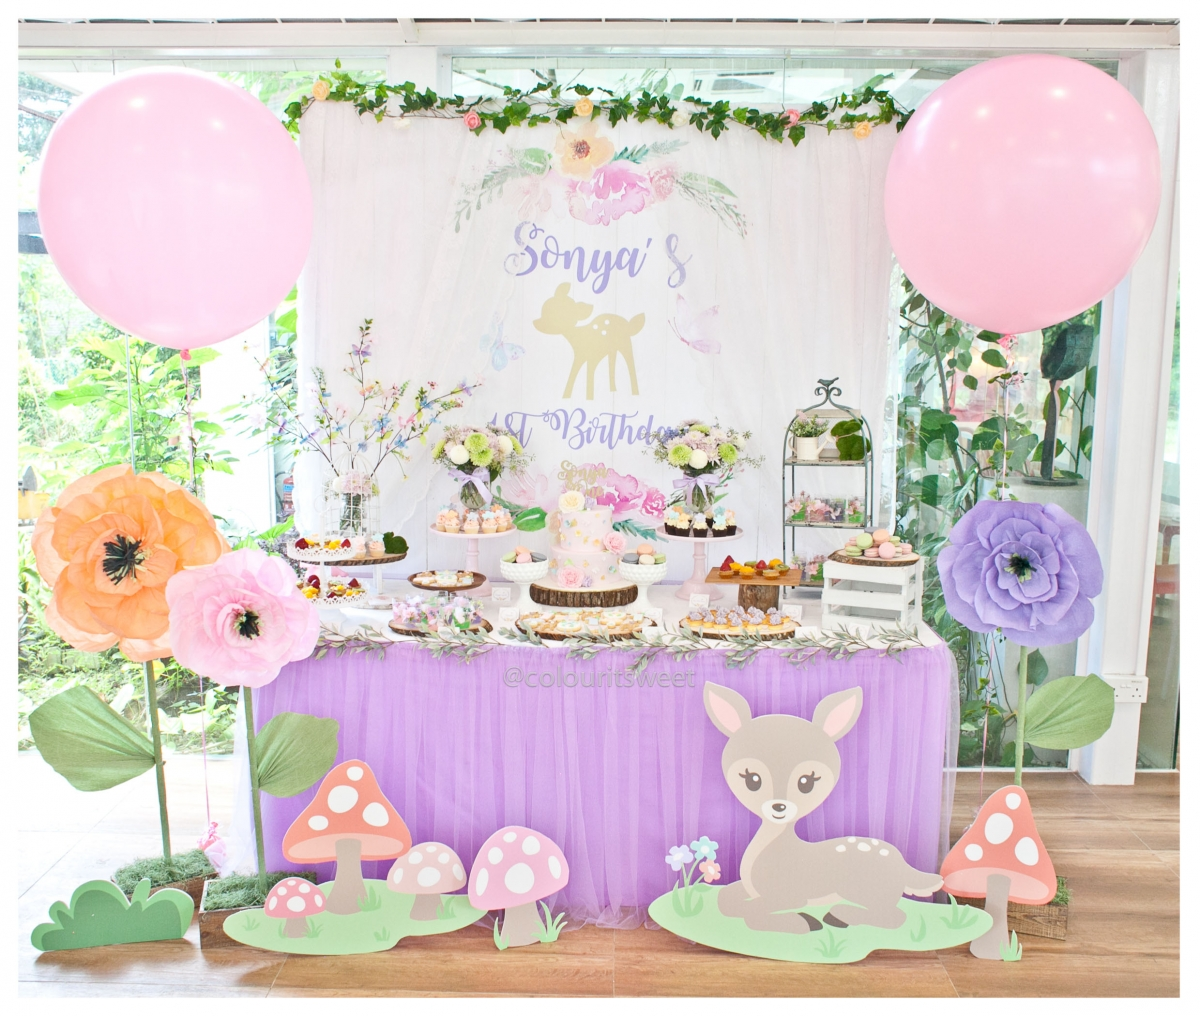 Baby Shower Venues In Singapore: Sonya's Floral Bambi First Birthday » Colour It Sweet